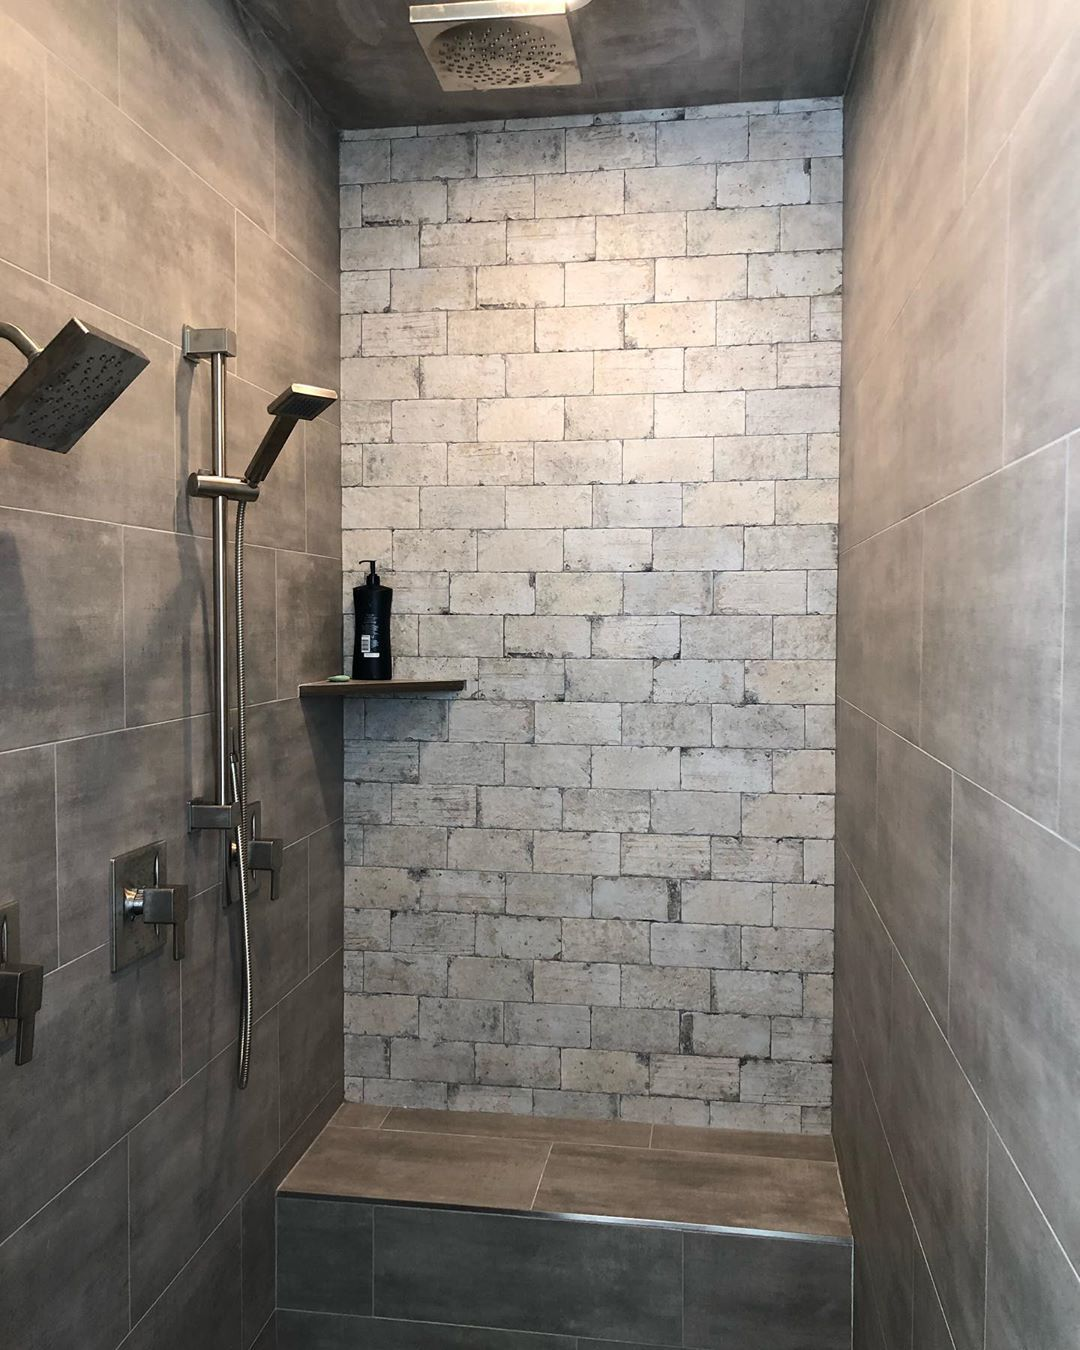 Brick Tile Accent Wall In The Shower Yes Please We Love This Product And Have Used It For A Tile Accent Wall Shower Accent Tile Industrial Bathroom Design